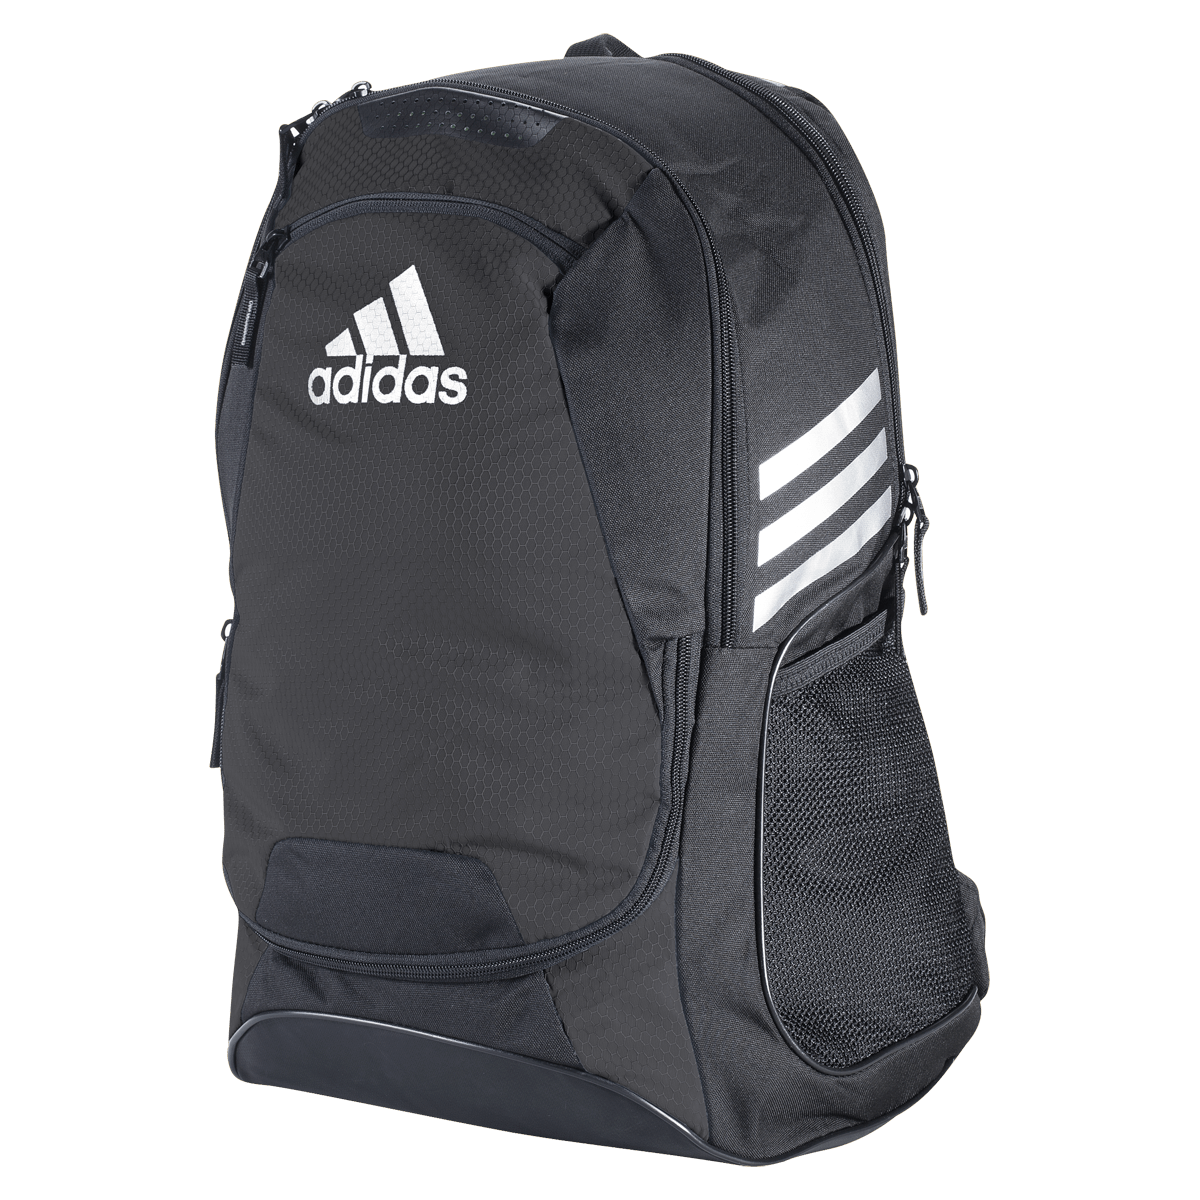 Black Adidas Rugby Backpack With White Logo and White Stripes